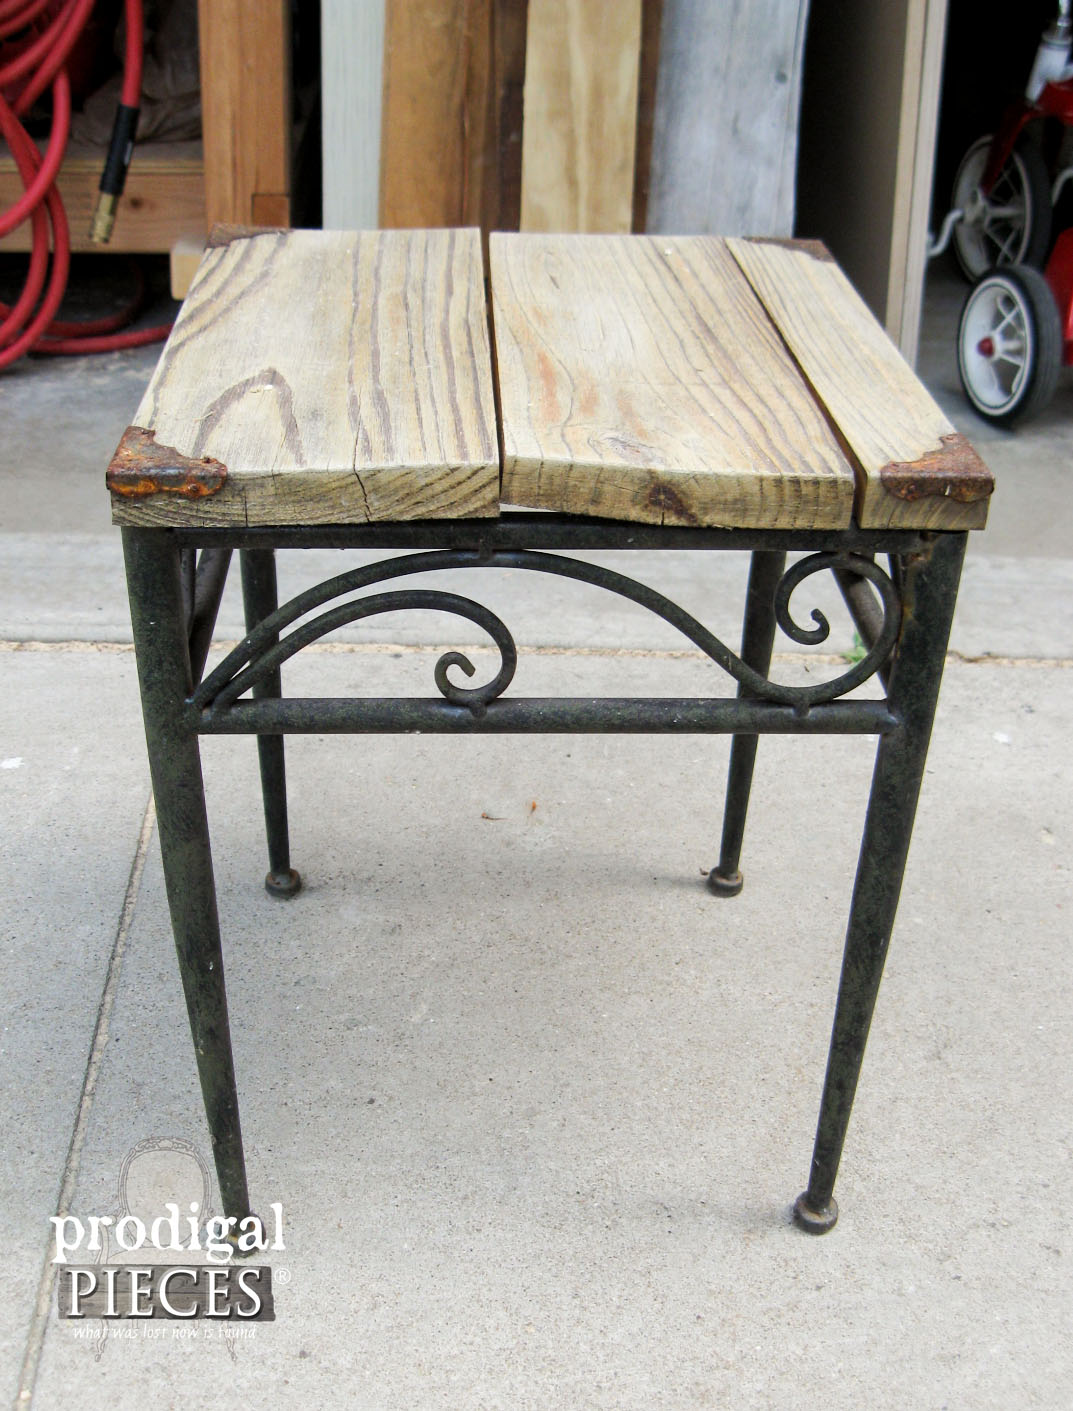 Outdoor Table Before Patio Makeover | Prodigal Pieces | www.prodigalpieces.com